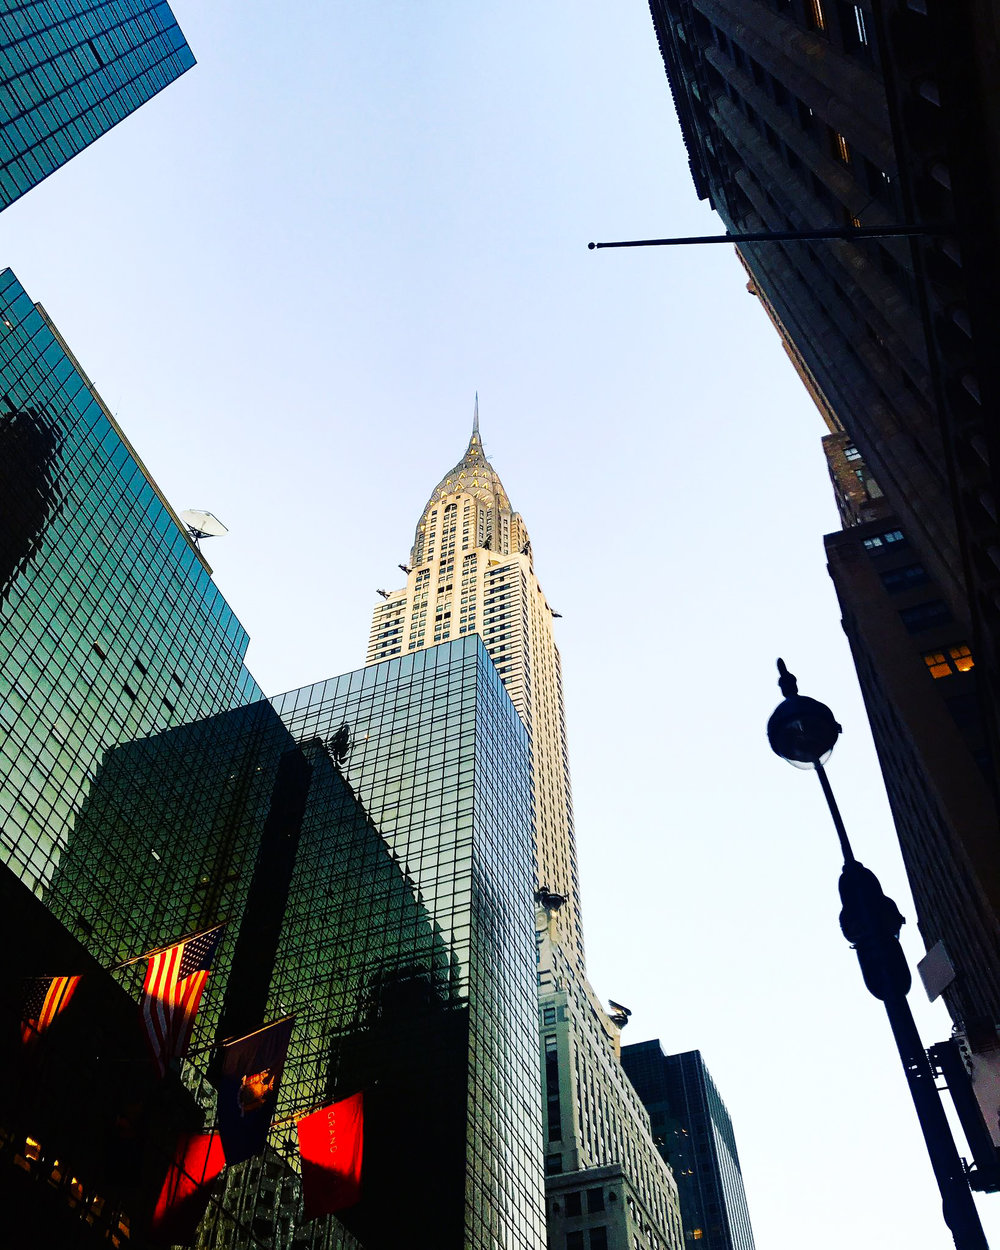 chrysler building. photo: lucas compan